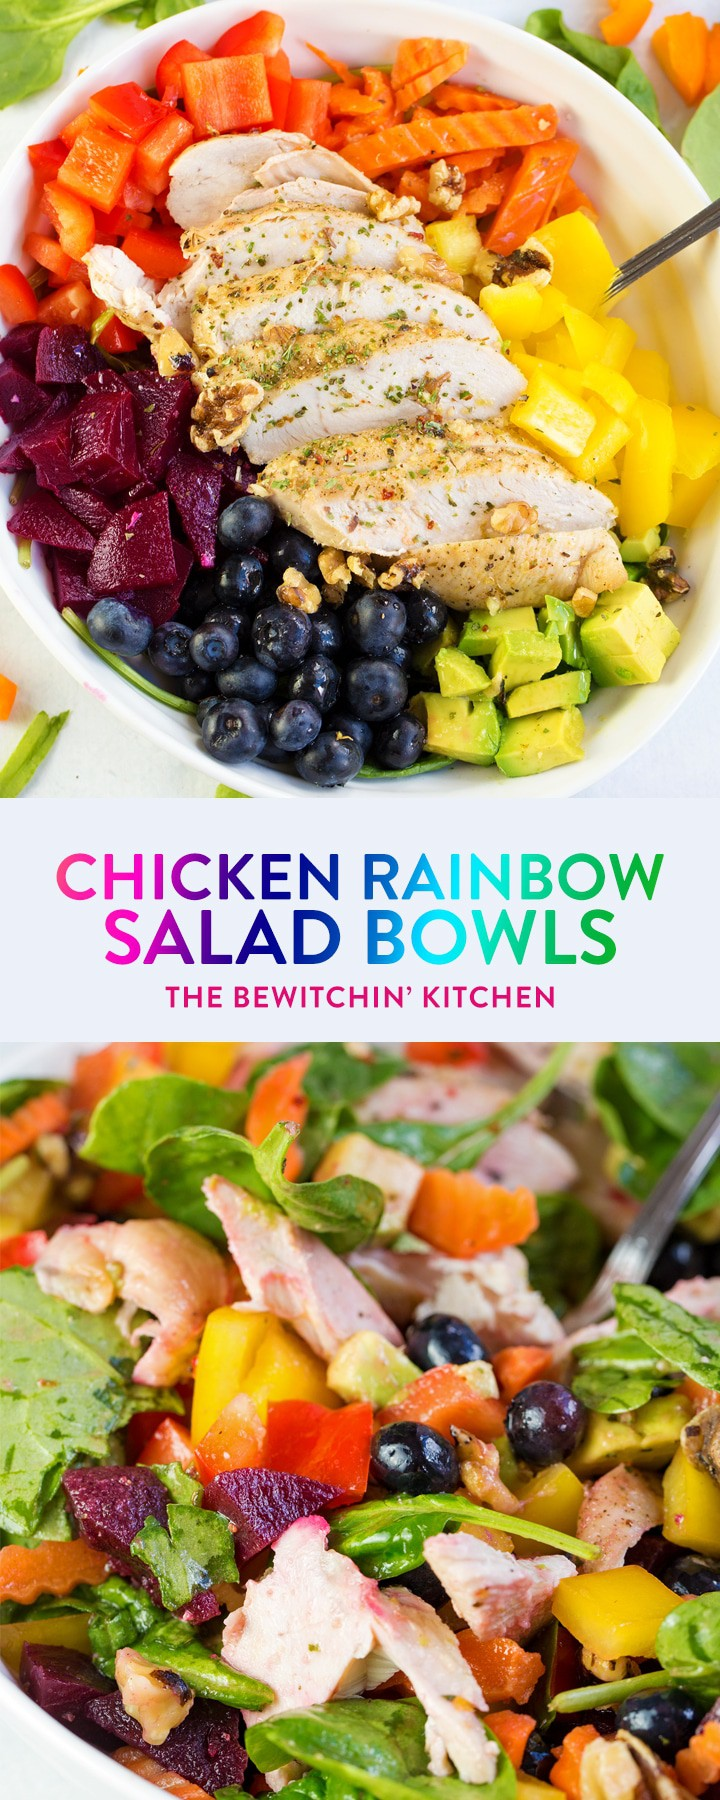 This easy chicken rainbow salad recipe uses colorful bell peppers, avocado, chicken breast, blueberries, beets (or purple cabbage) and dressed with a key lime vinaigrette. Veggies and fruit make this yummy summer salad a healthy, paleo, and gluten free dinner. Meal prep the chicken to make this a quick and nutritious lunch for work! #ad #thebewitchinkitchen #summersalads #chickenrainbowsalad #rainbowrecipes #healthychickenrecipes #chickenbreastrecipes #chickendotca #dinnerrecipes #lunchrecipes #lunchrecipesforwork #liift4recipes #21dayfixrecipes #portionfix